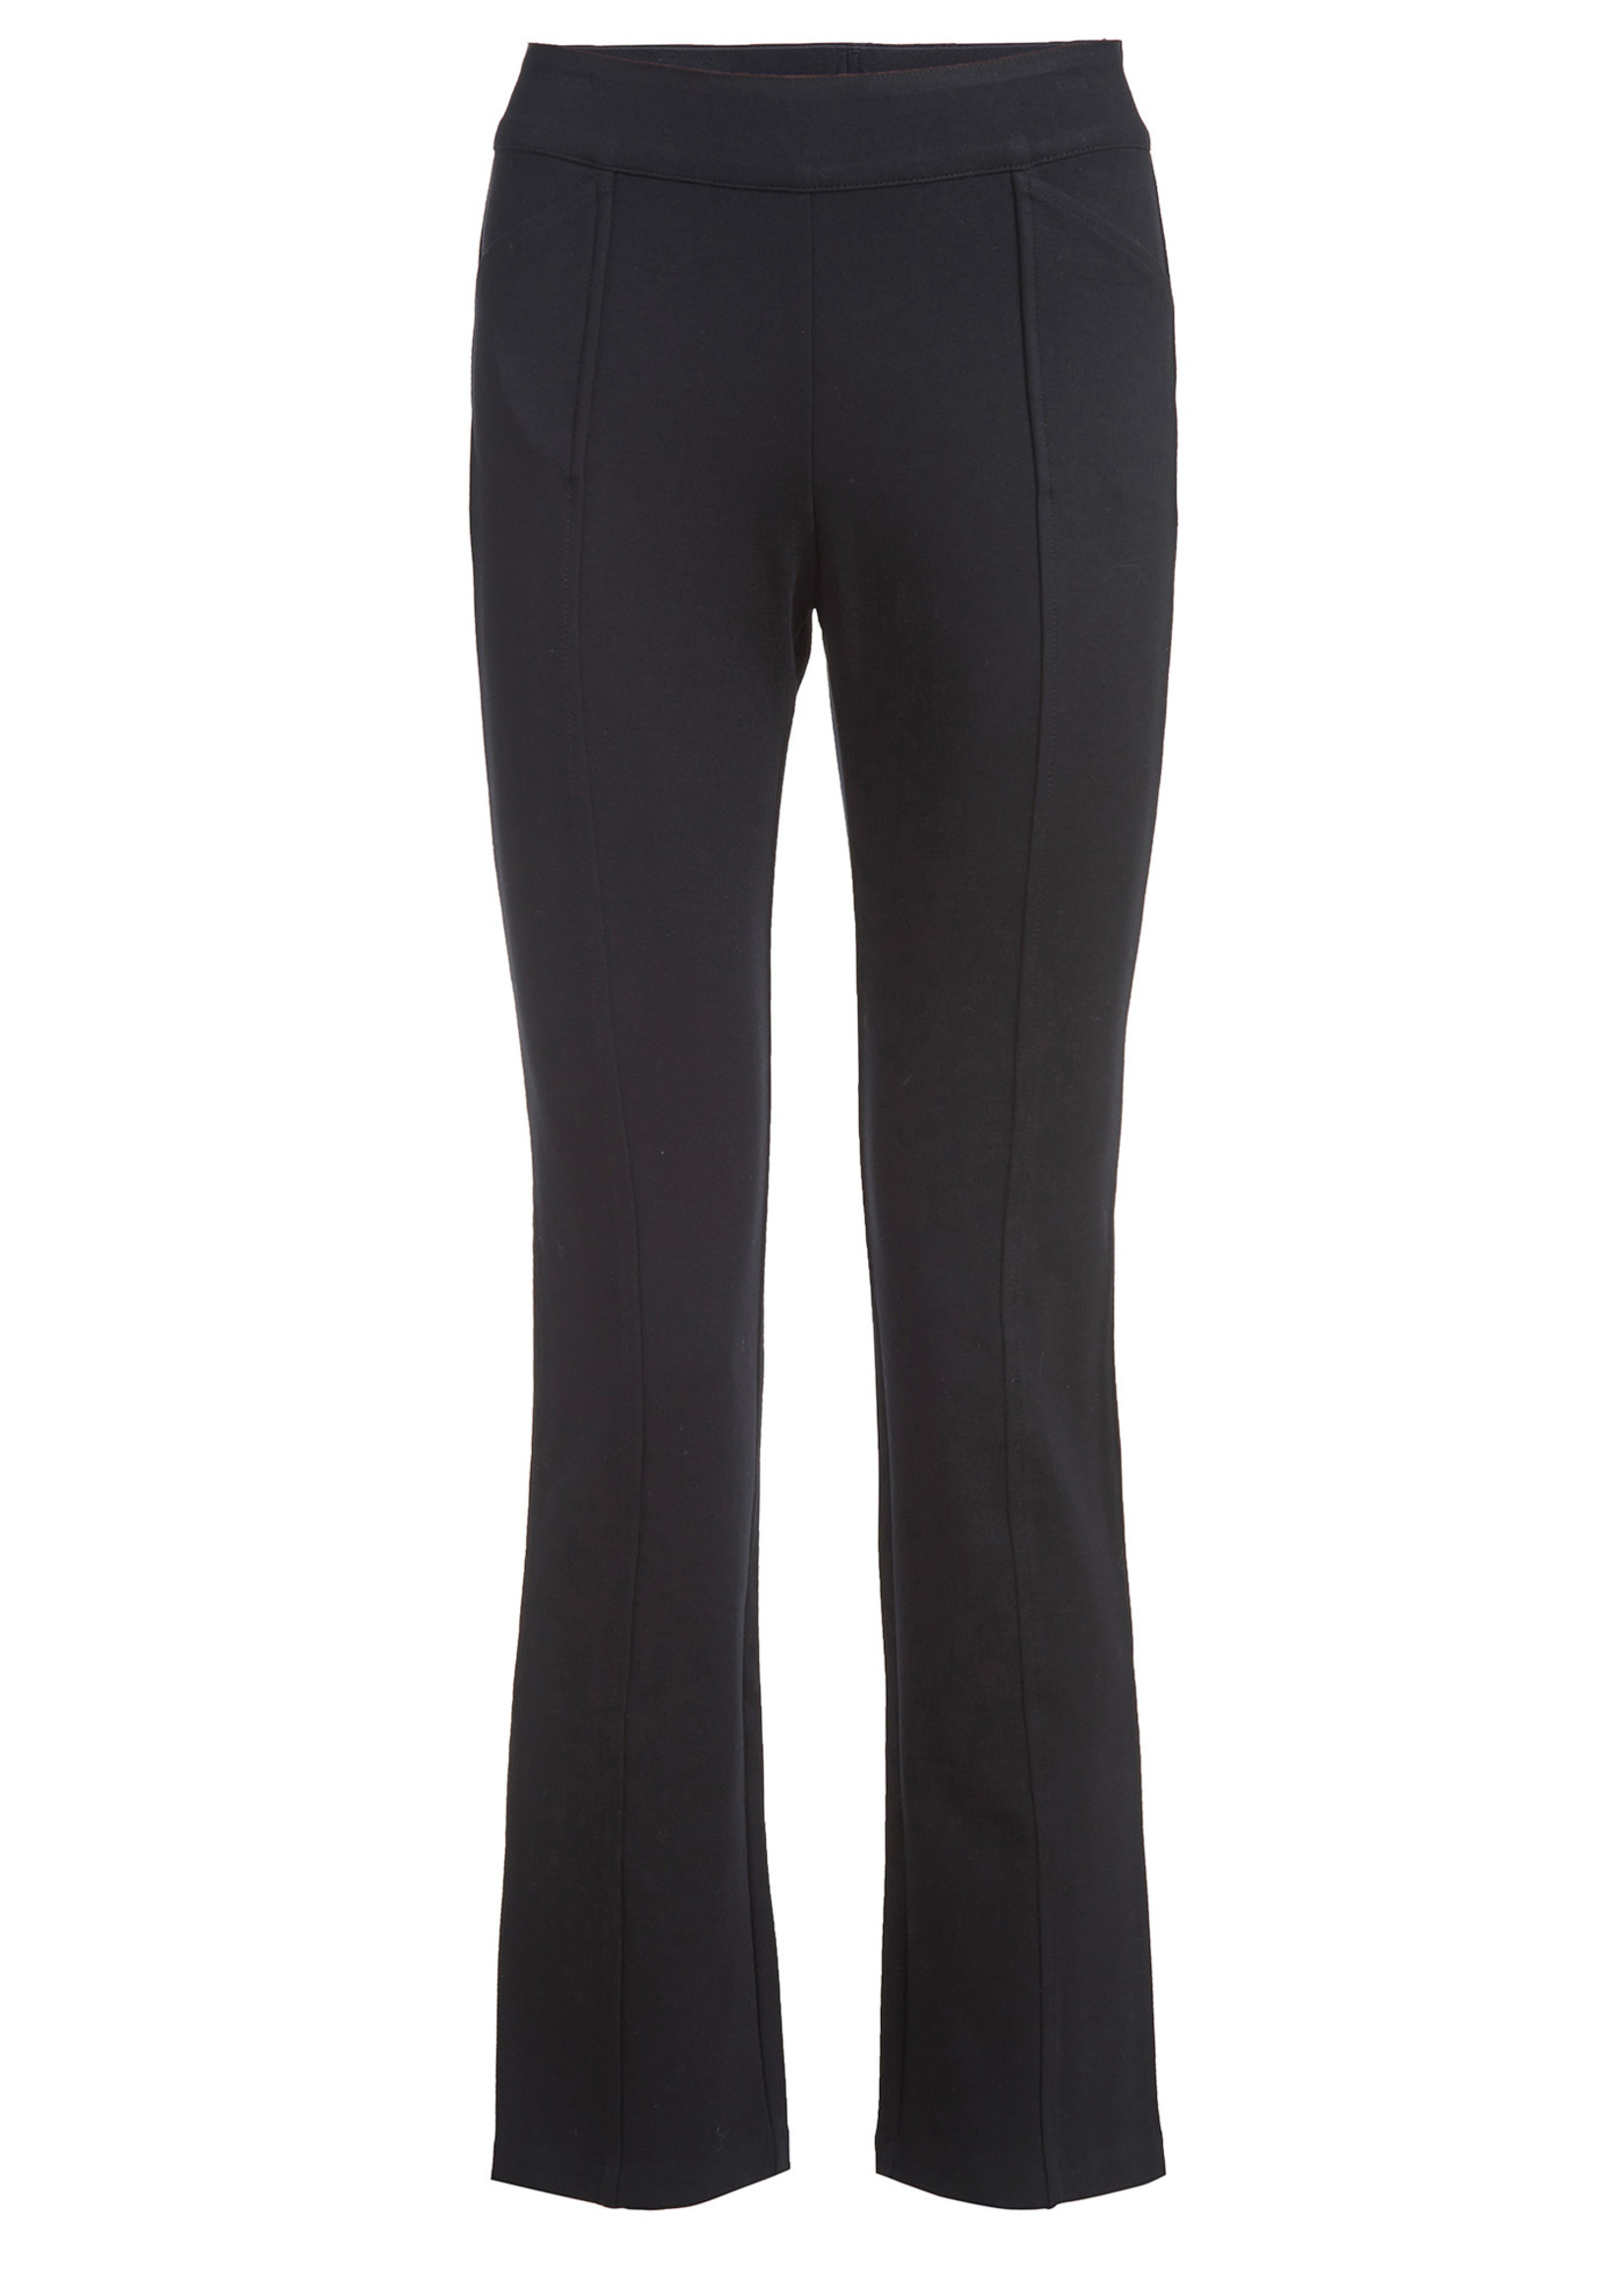 Duette NYC Flare Leg Pant Essex